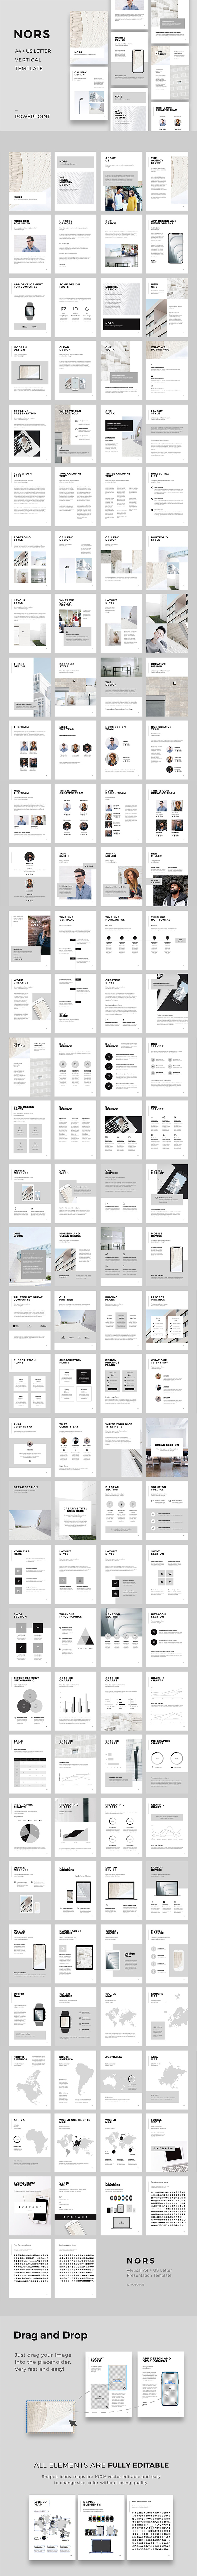 GraphicRiver NORS Vertical Powerpoint A4 US Letter Template 20701747